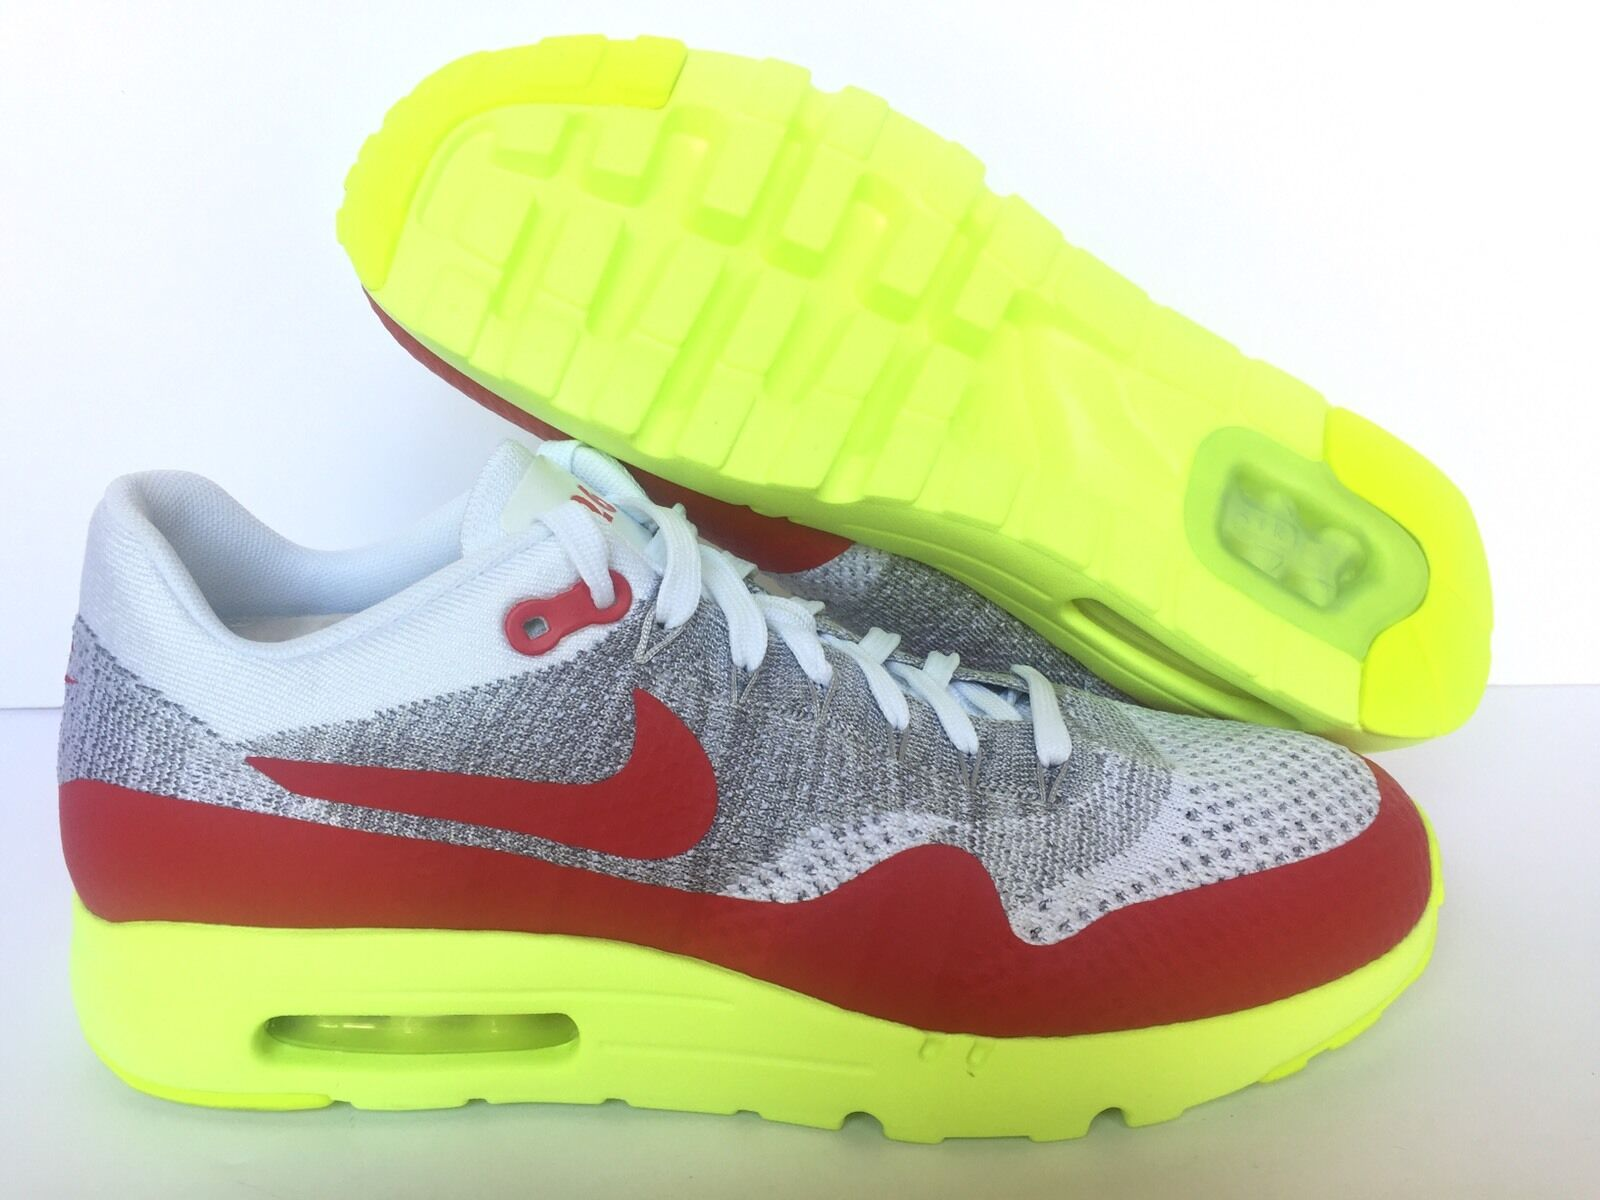 NIKE ID 3.26 AIR MAX WHITE/RED/NEON GREEN [ 940379-992 ] US MEN SZ 11.5